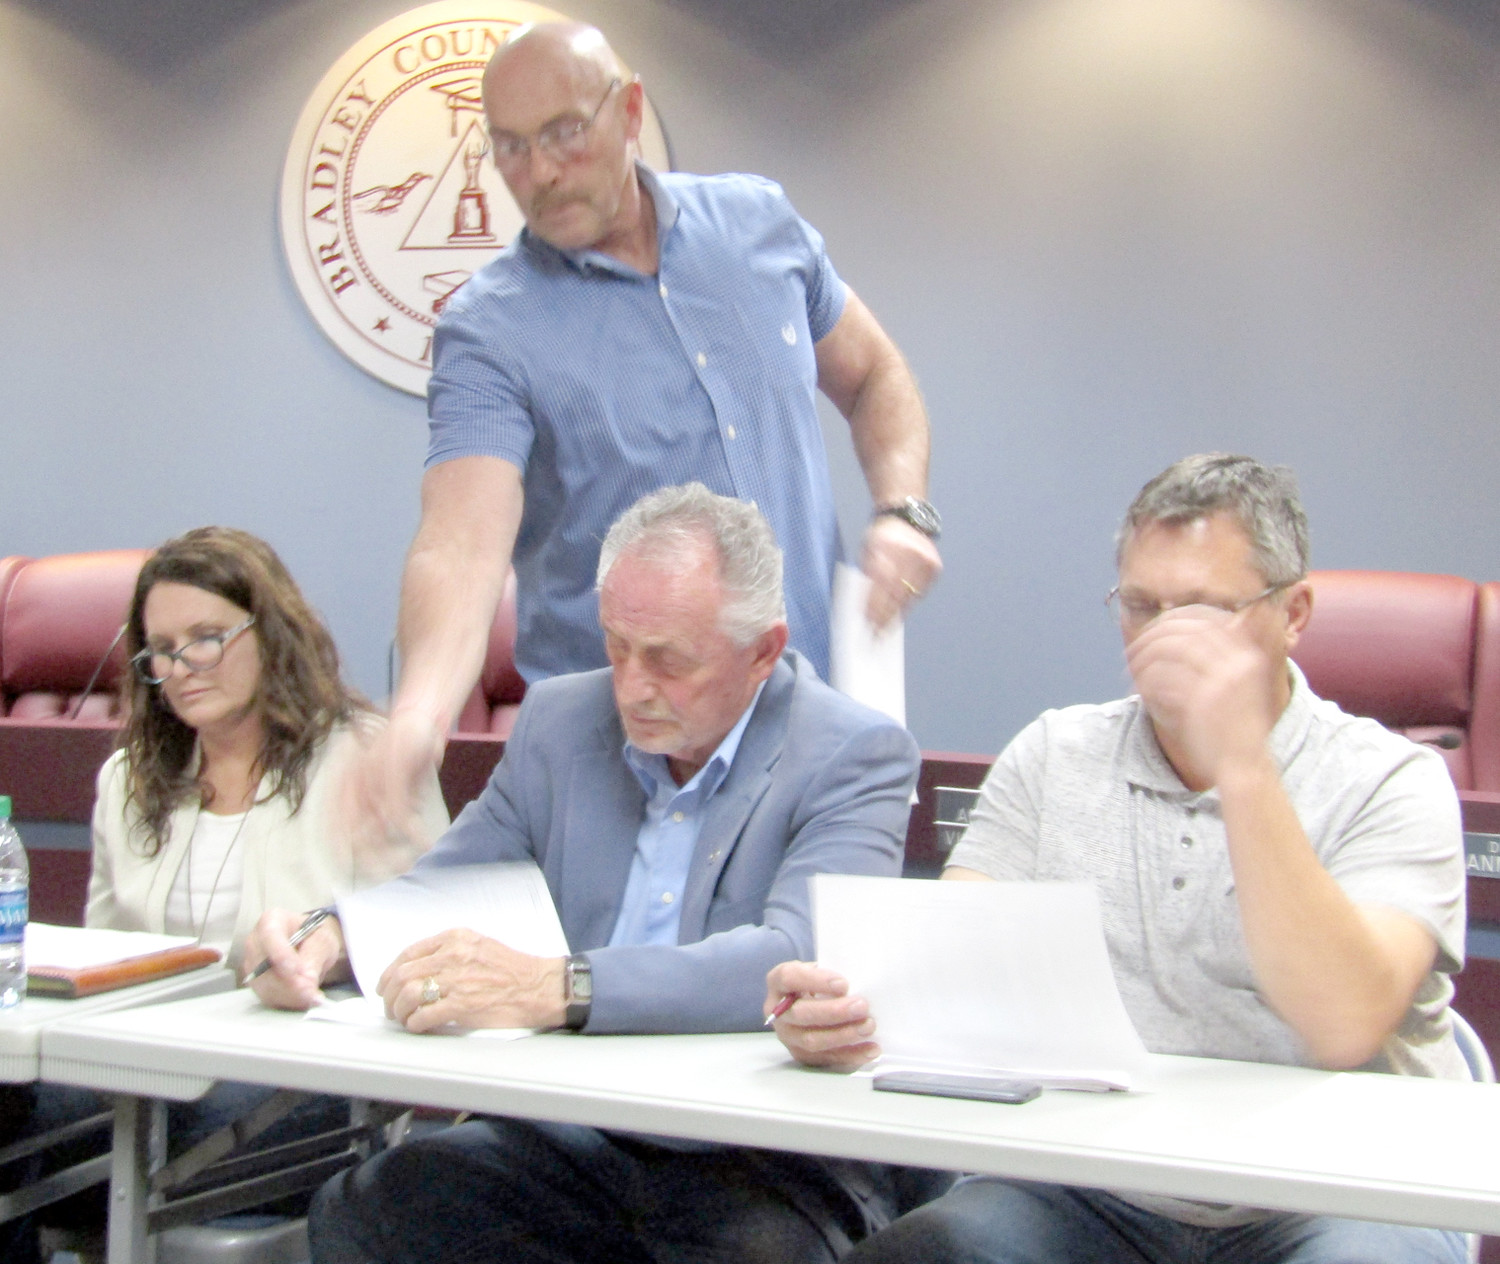 BRADLEY COUNTY Commissioner Dan Rawls hands out a list of what he said were back taxes owed by contractor Mike Crittenden after the commission voted to reimburse Crittenden for work he says he should not have been required to do on his subdivision. Seated, from left, are commissioners Charlotte Peak, Howard Thompson and Bobby Goins.